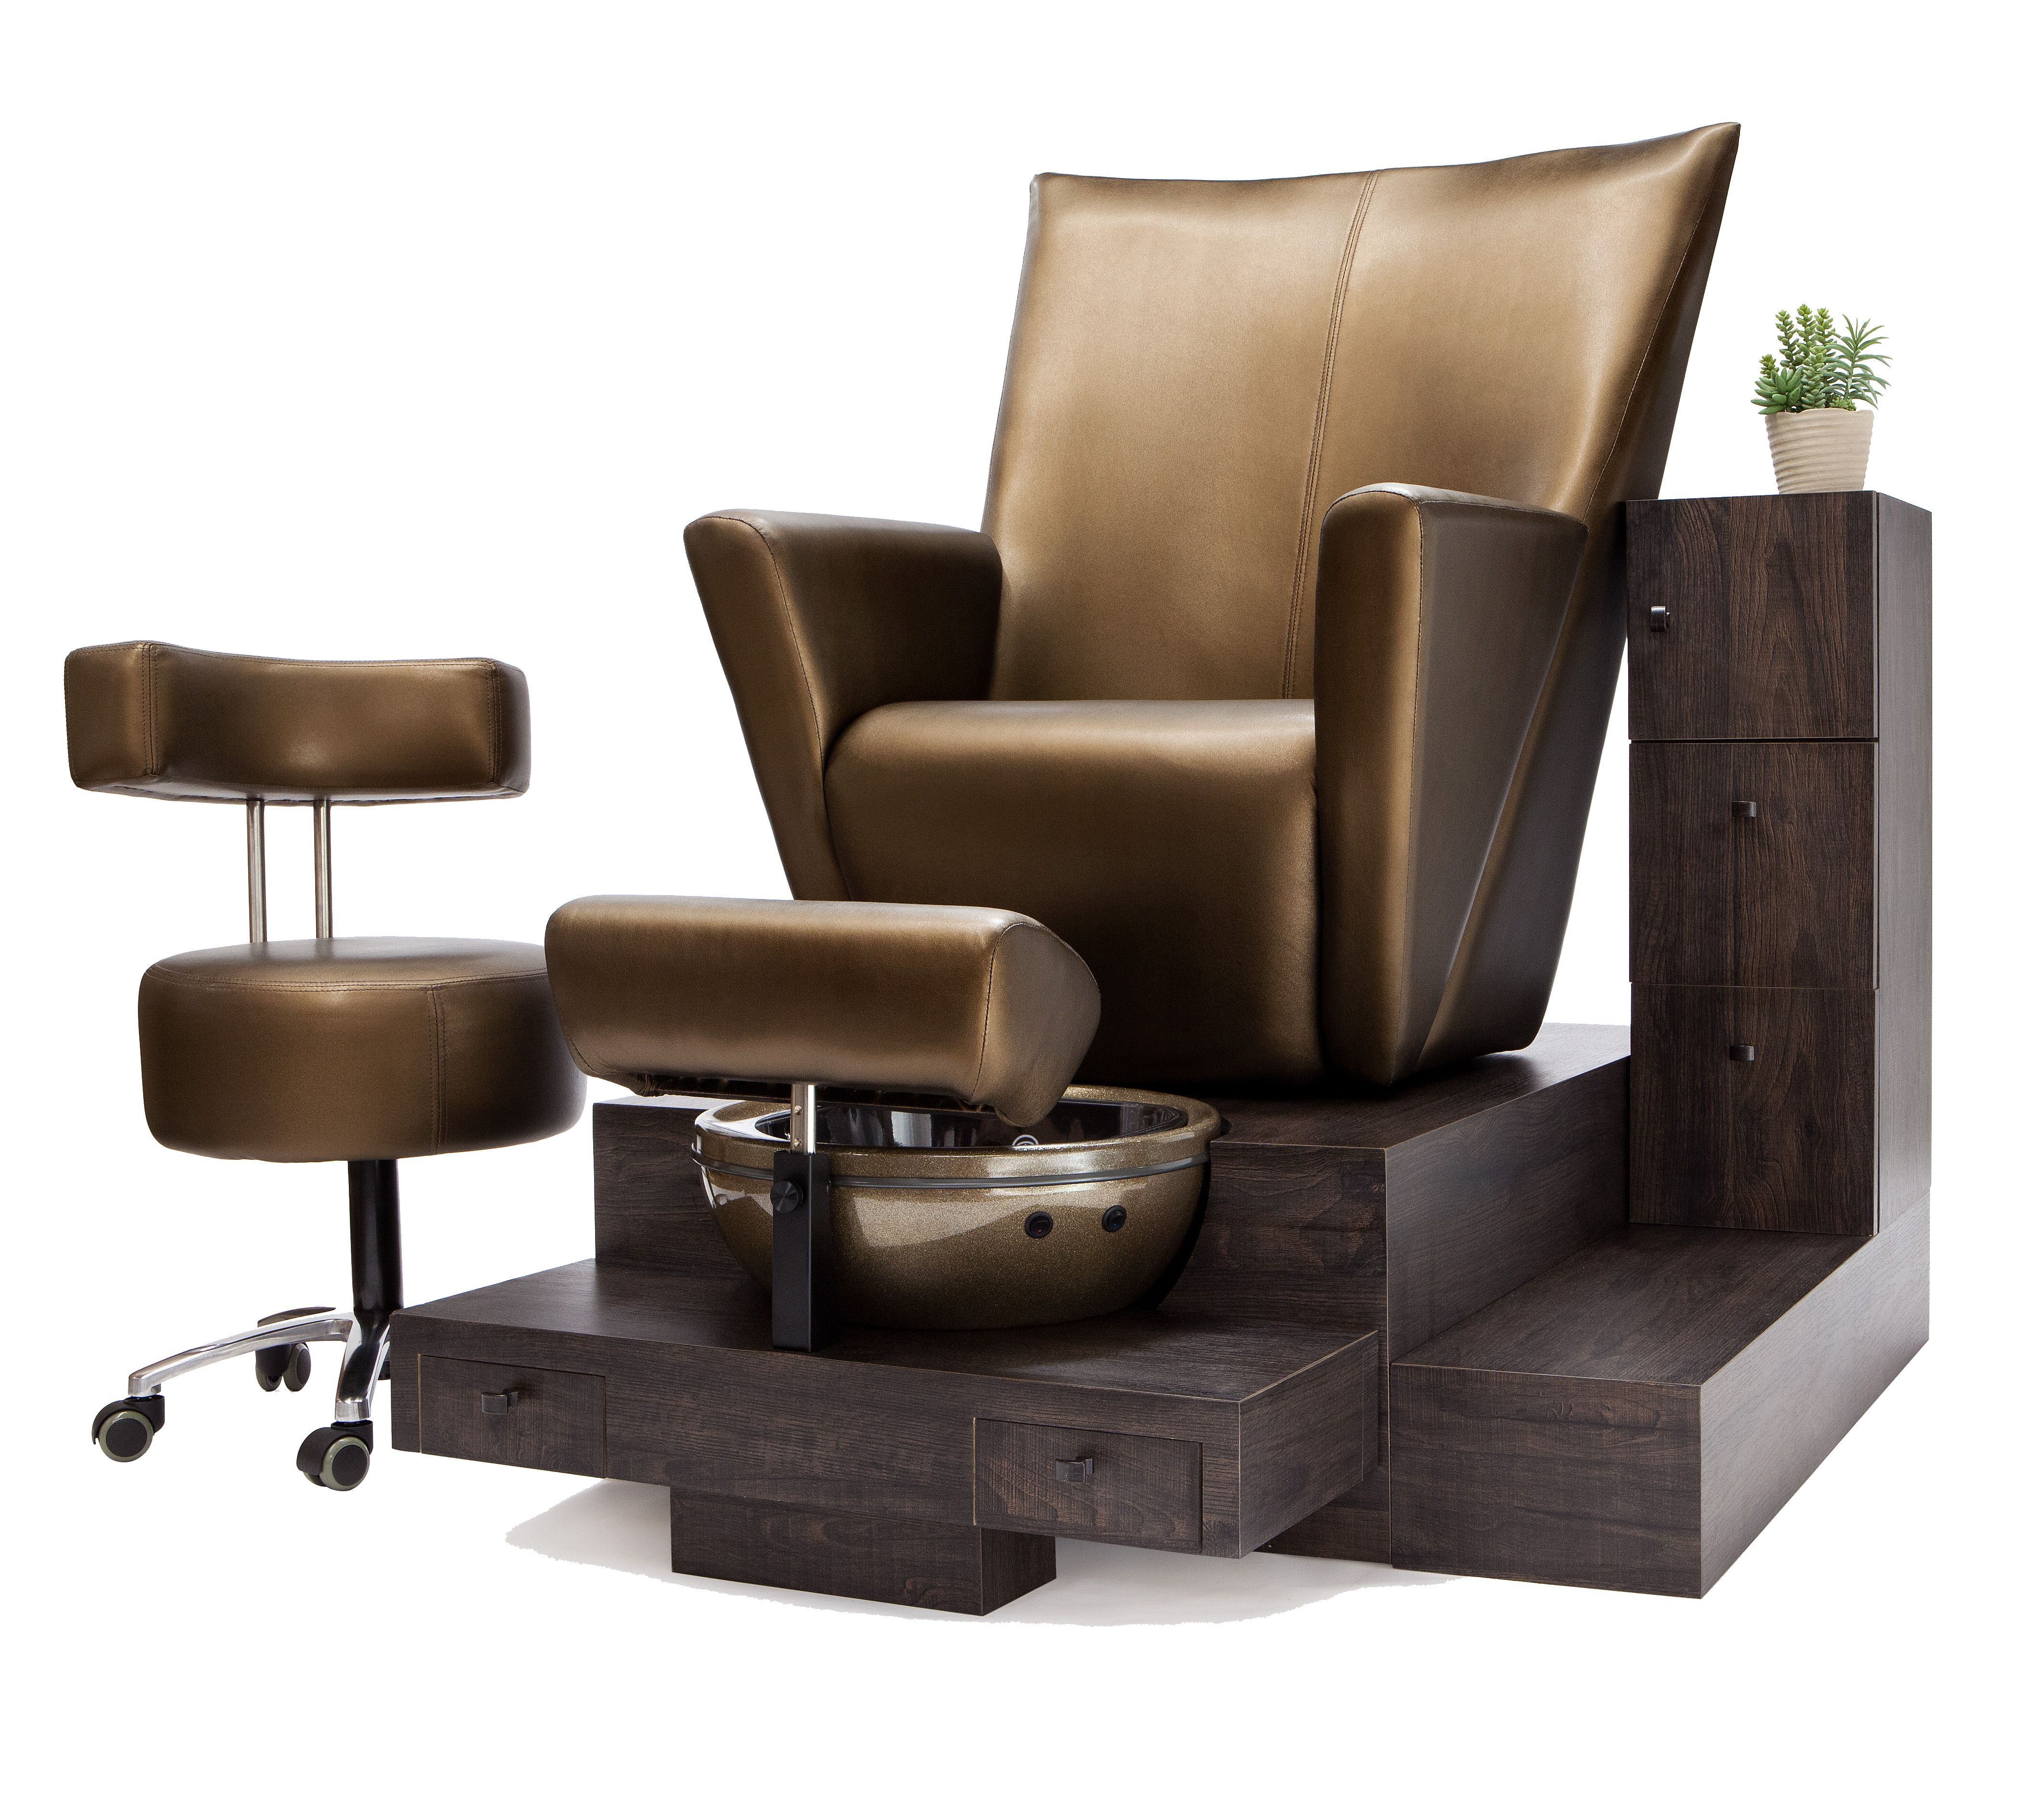 Coming Soon Belava's new Pipeless Elevating Pedicure Throne...... Rise up your client & save your back! Uses Belava's fitted disposable liners for sanitation